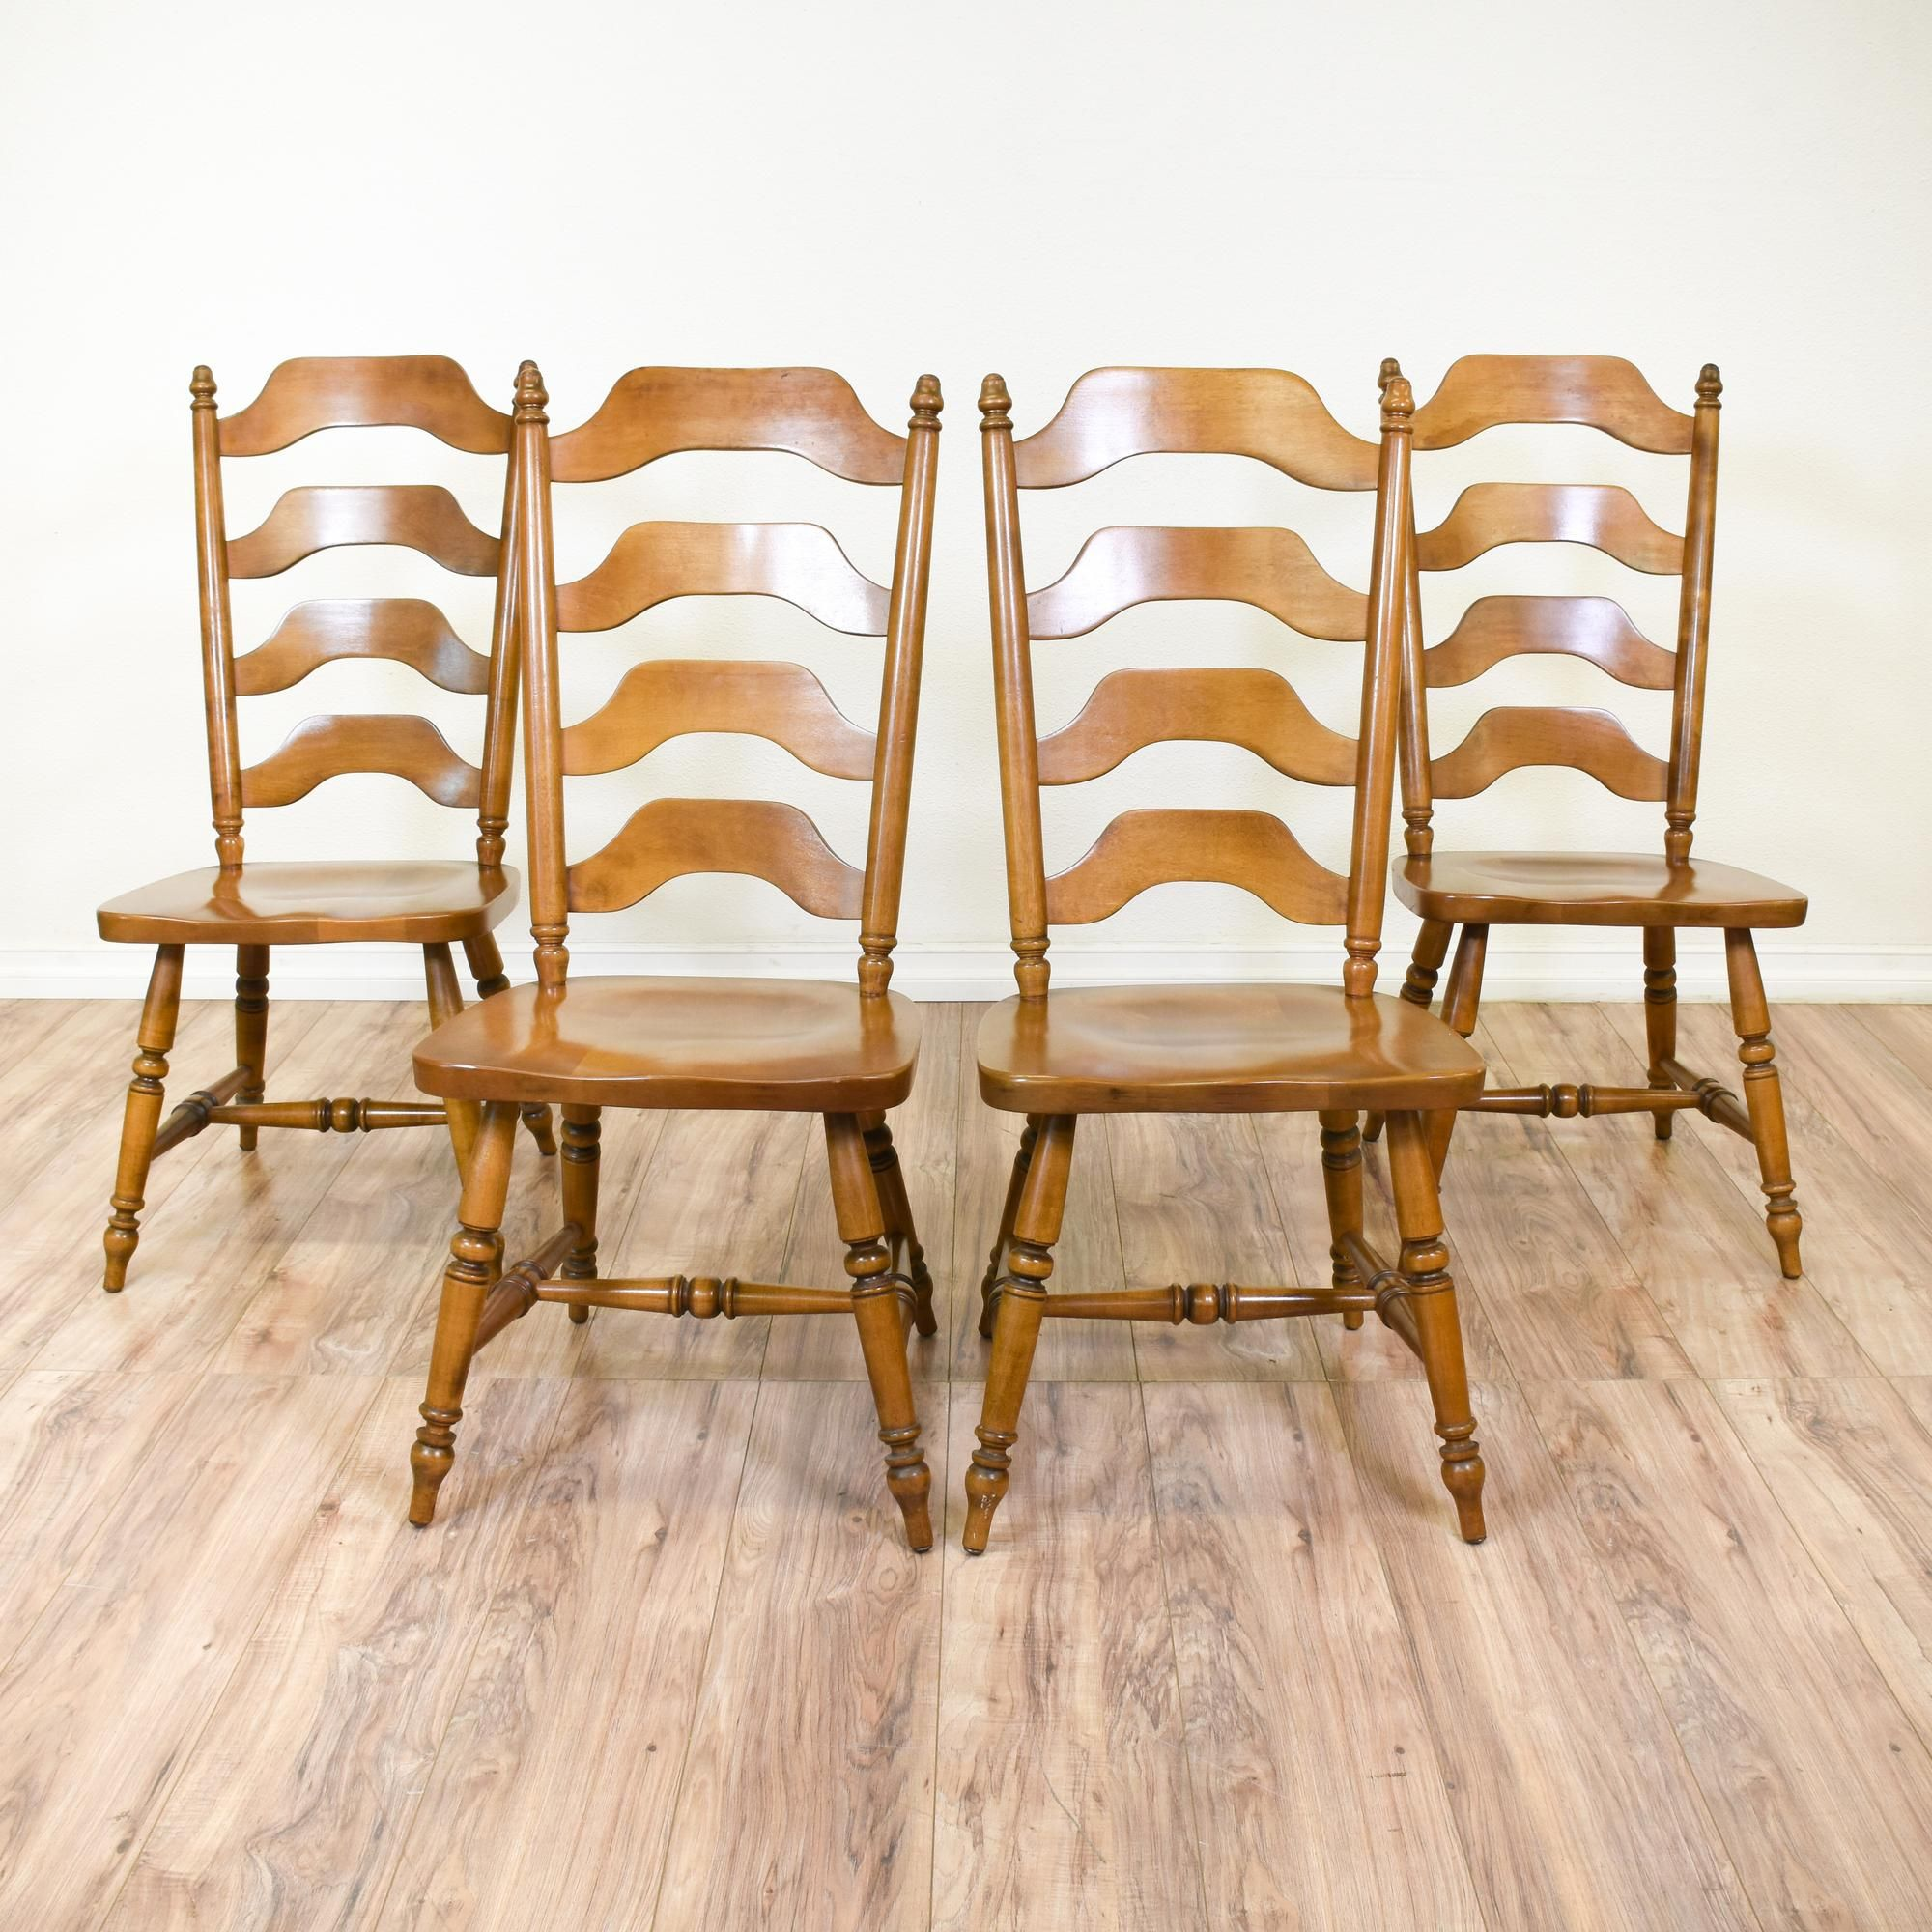 This set of 4 country chic chairs are featured in a solid wood with